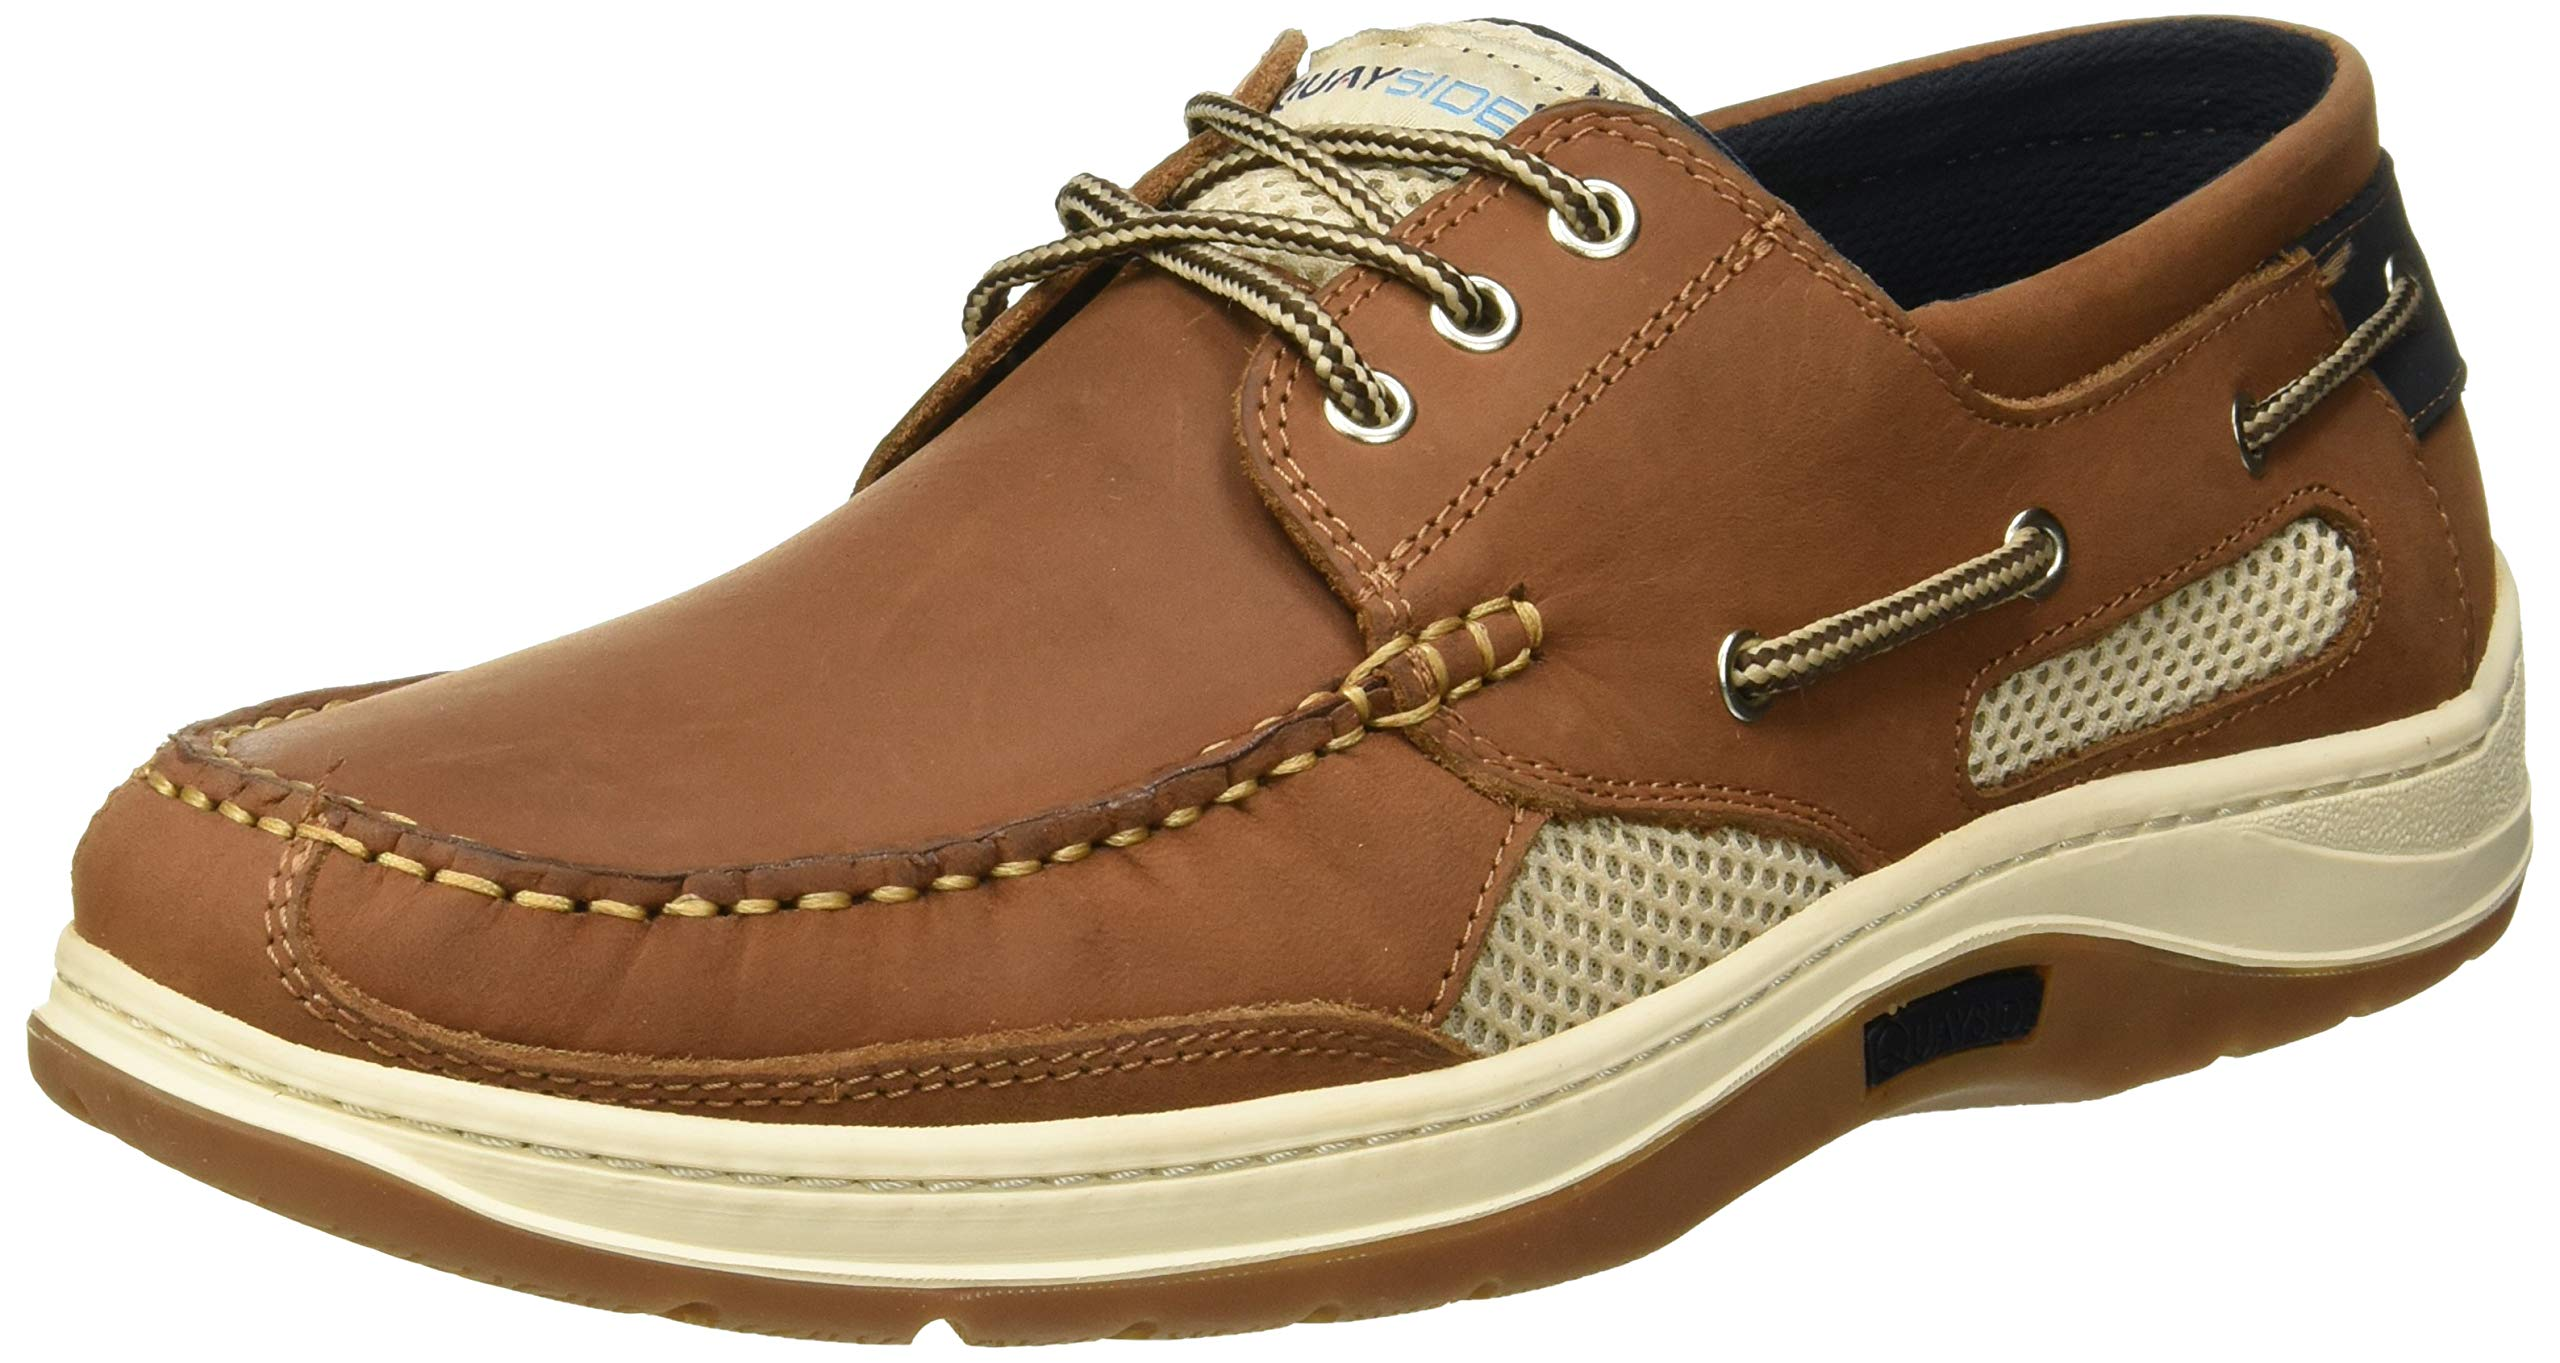 Quayside Voile Eu SydneyChaussures Voile Quayside SydneyChaussures HommeNoix46 b76gyf